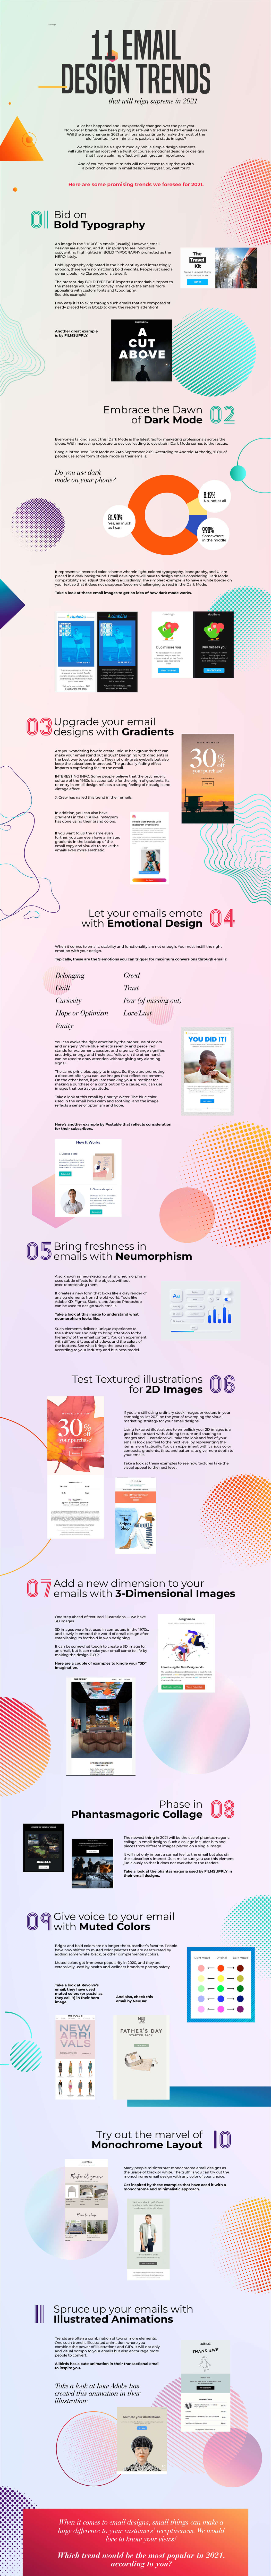 11 Email Design Trends that will reign supreme in 2021